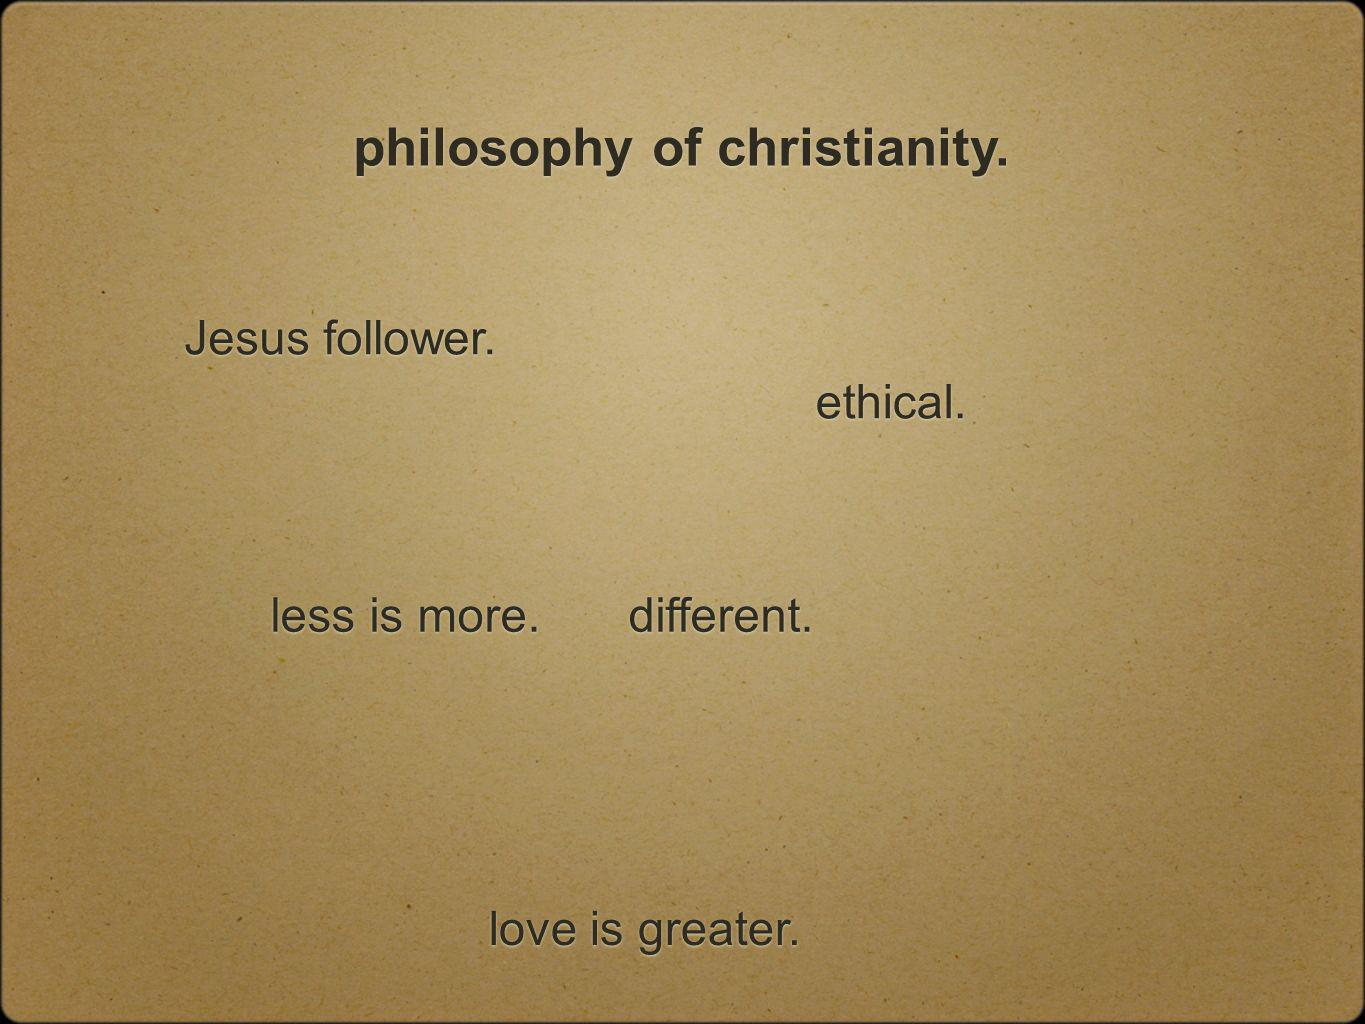 philosophy of christianity. Jesus follower. ethical. love is greater. different. less is more.